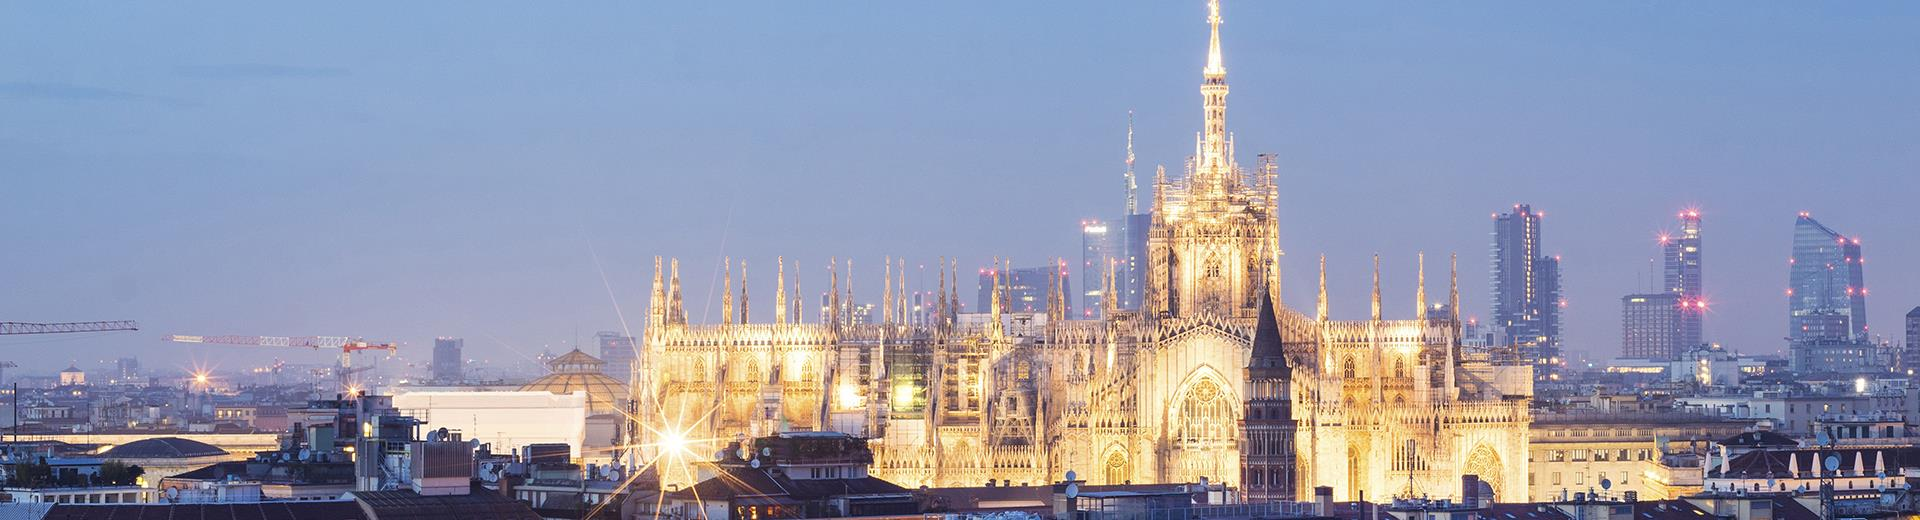 Are you going to visi Milano and haven't found a hotel yet? Book at the Best Western Hotel City